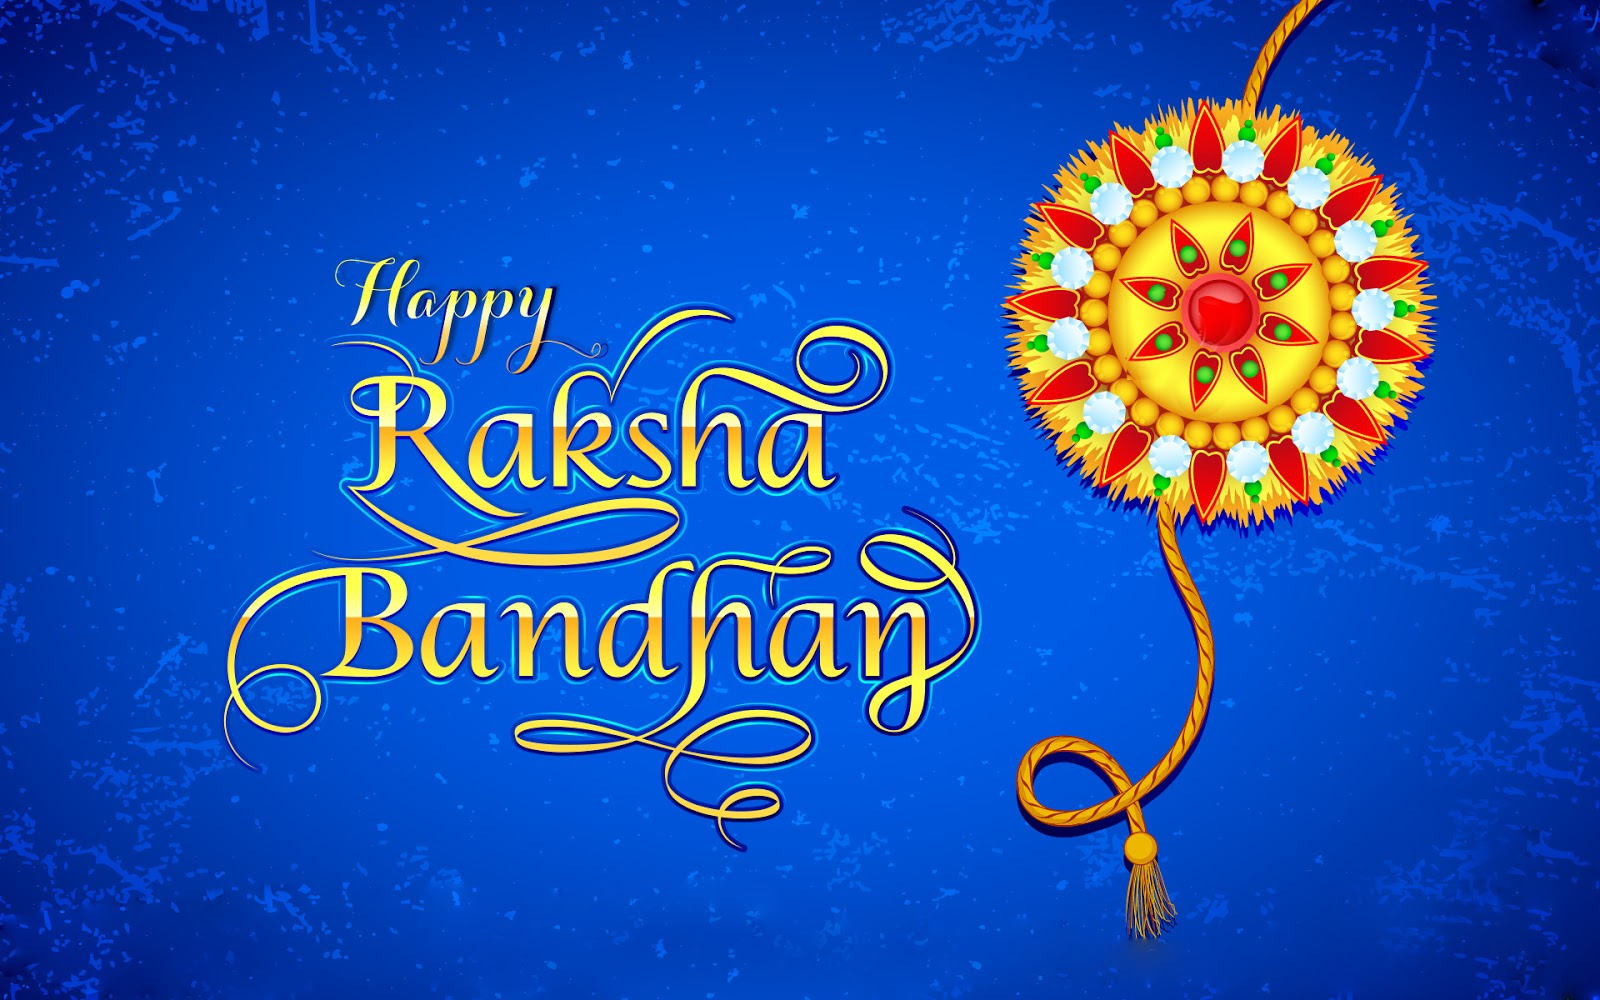 20 Most Beautiful Raksha Bandhan Images With Quotes Rakhi 2017